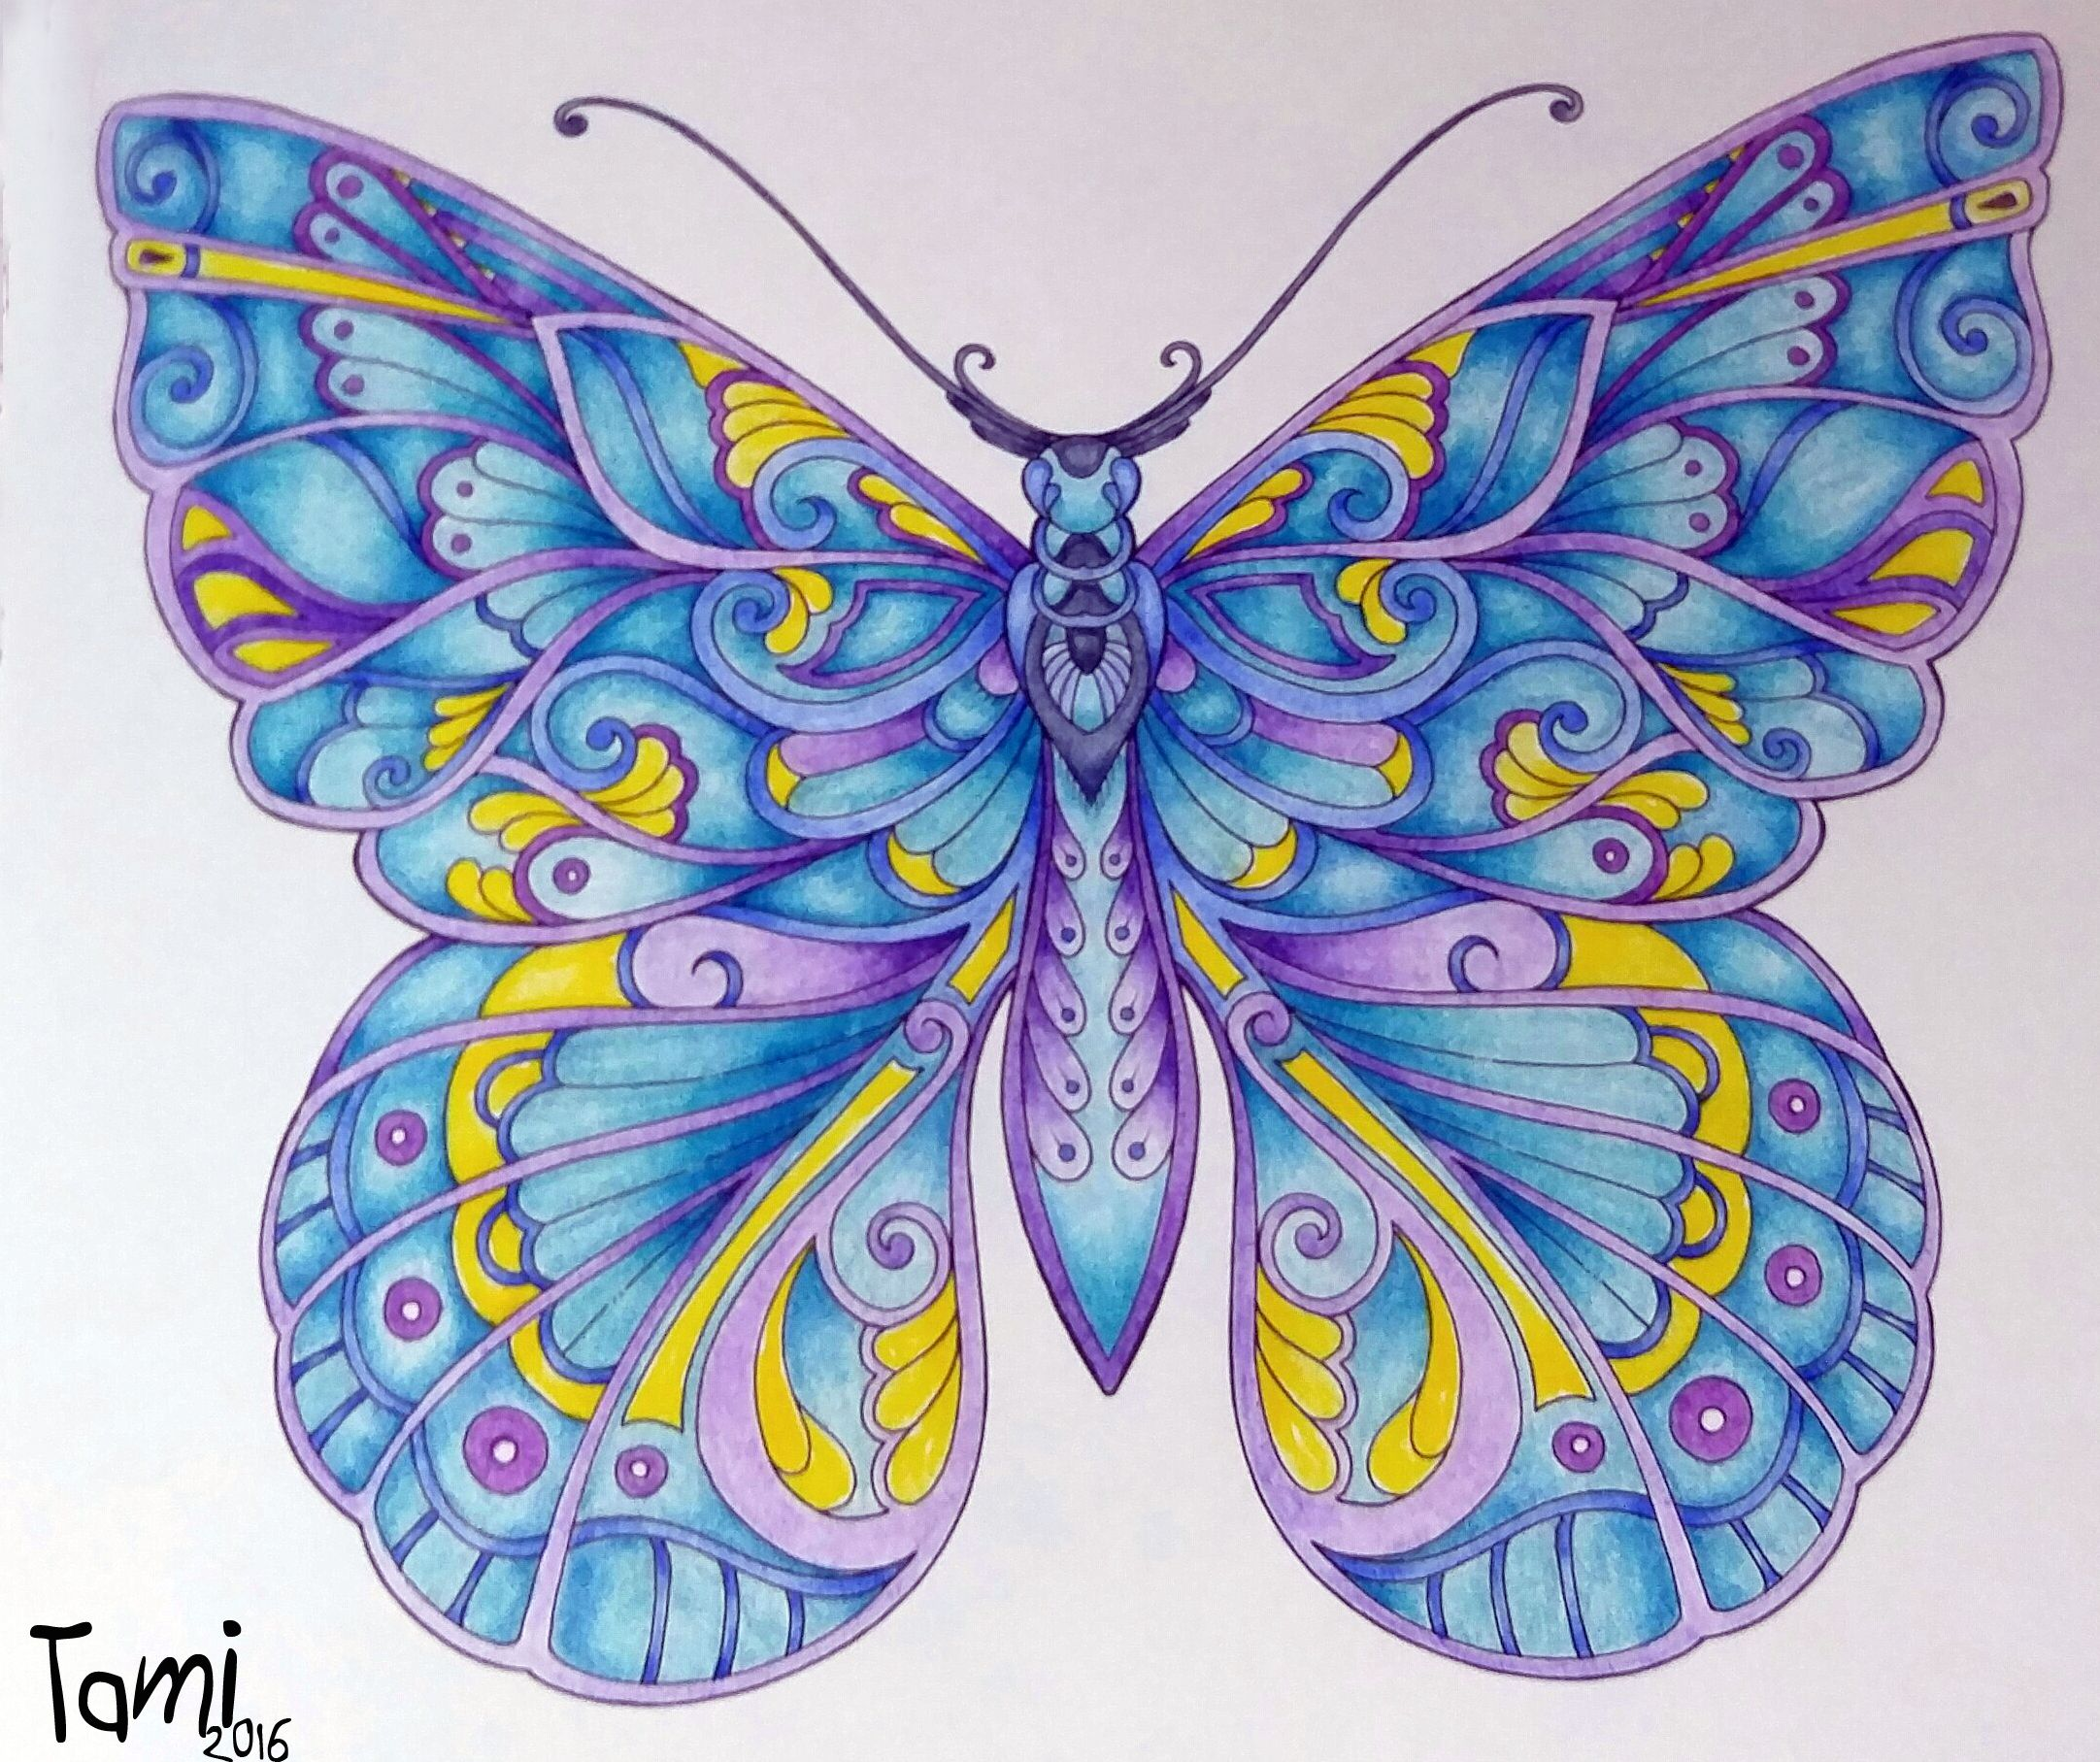 Done With Polychromos Pencils From Magical Jungle Johanna Basford Joanna Basford Coloring Coloring Books Johanna Basford Coloring